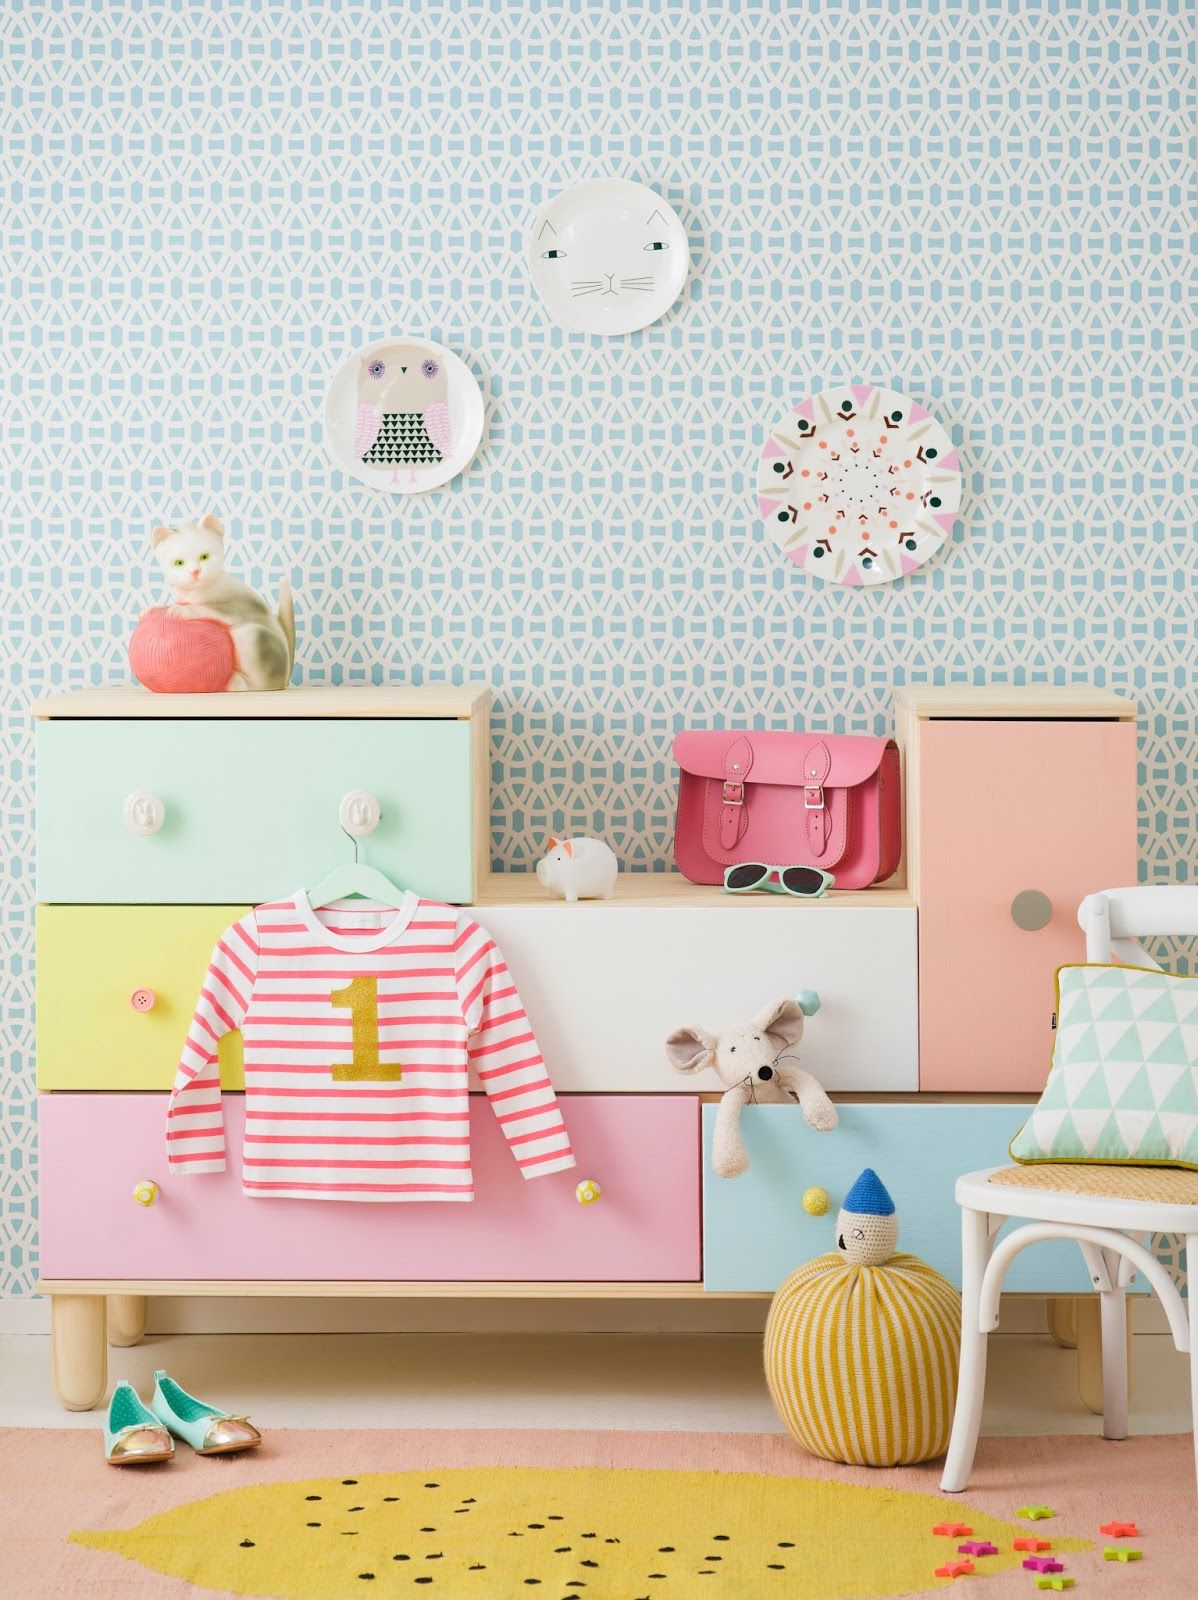 Ikea Möbel Für Kinder Stylish Ikea Hacks For Kids Rooms And Nurseries Children